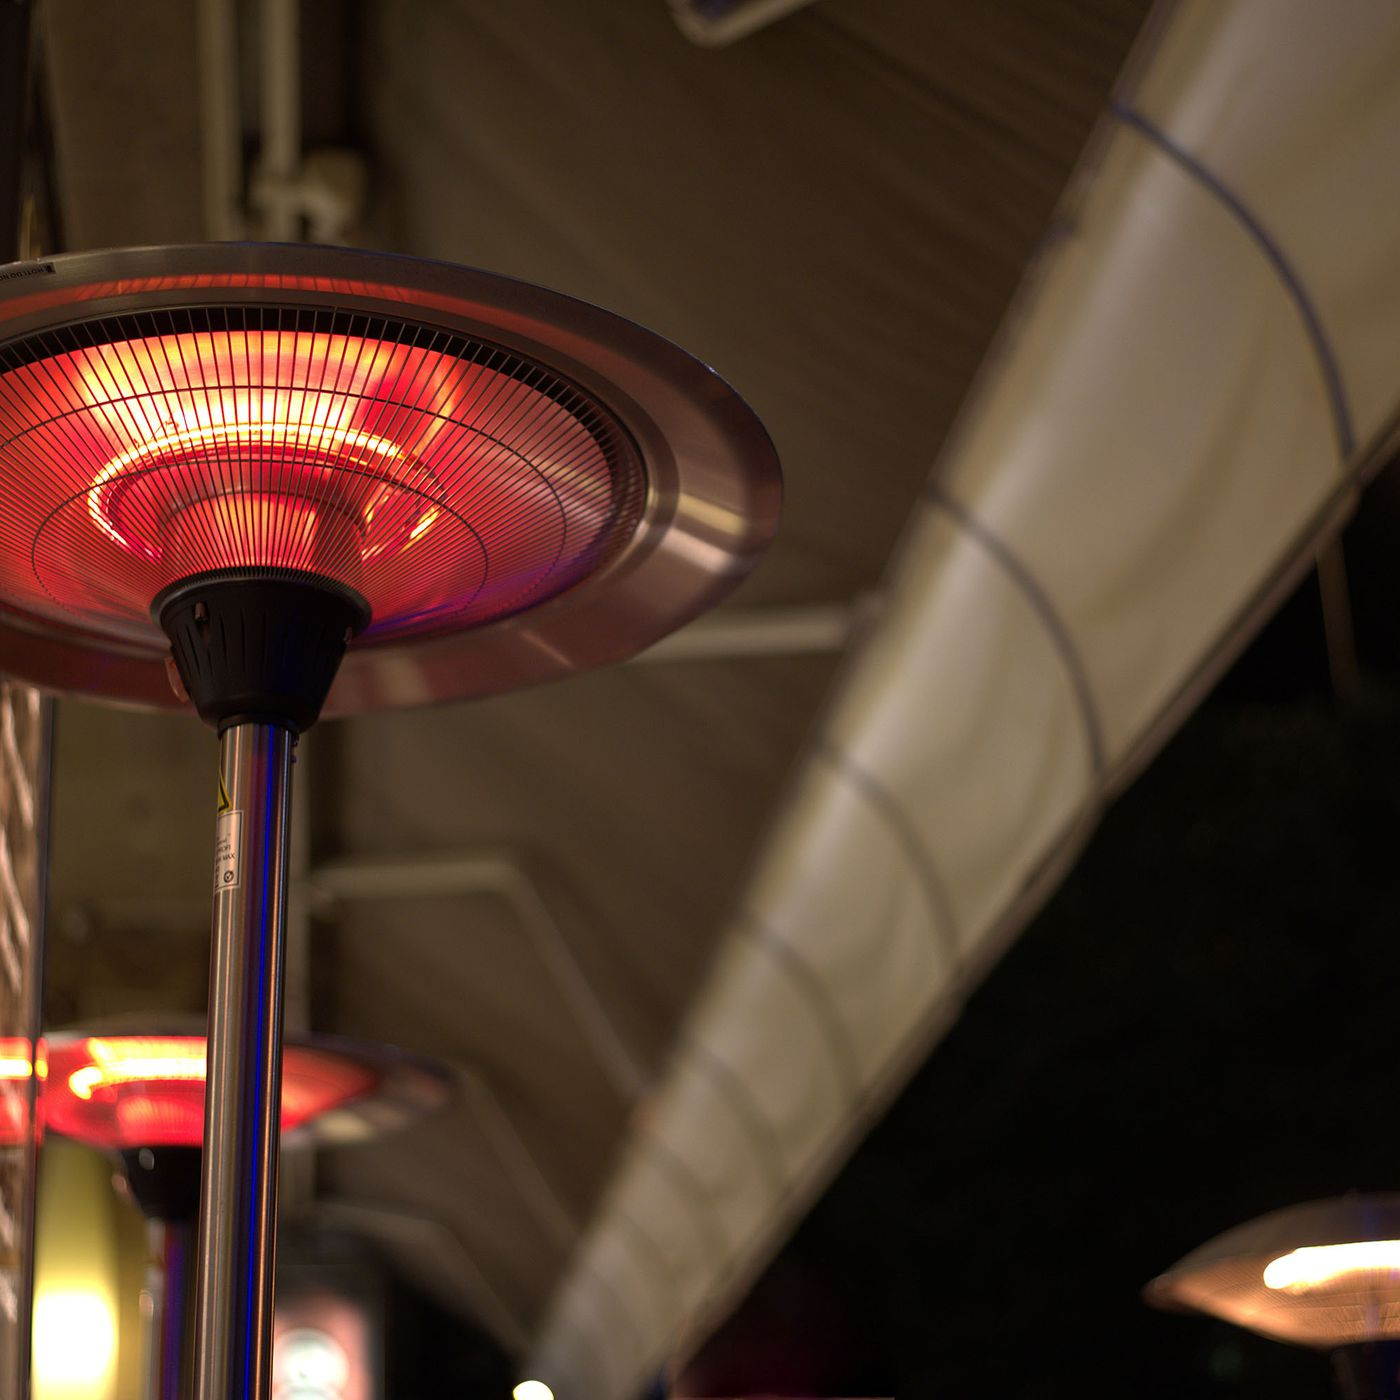 eater.com - Jenny G. Zhang - Rampant Heater Theft Is the Latest Blow to Outdoor Dining